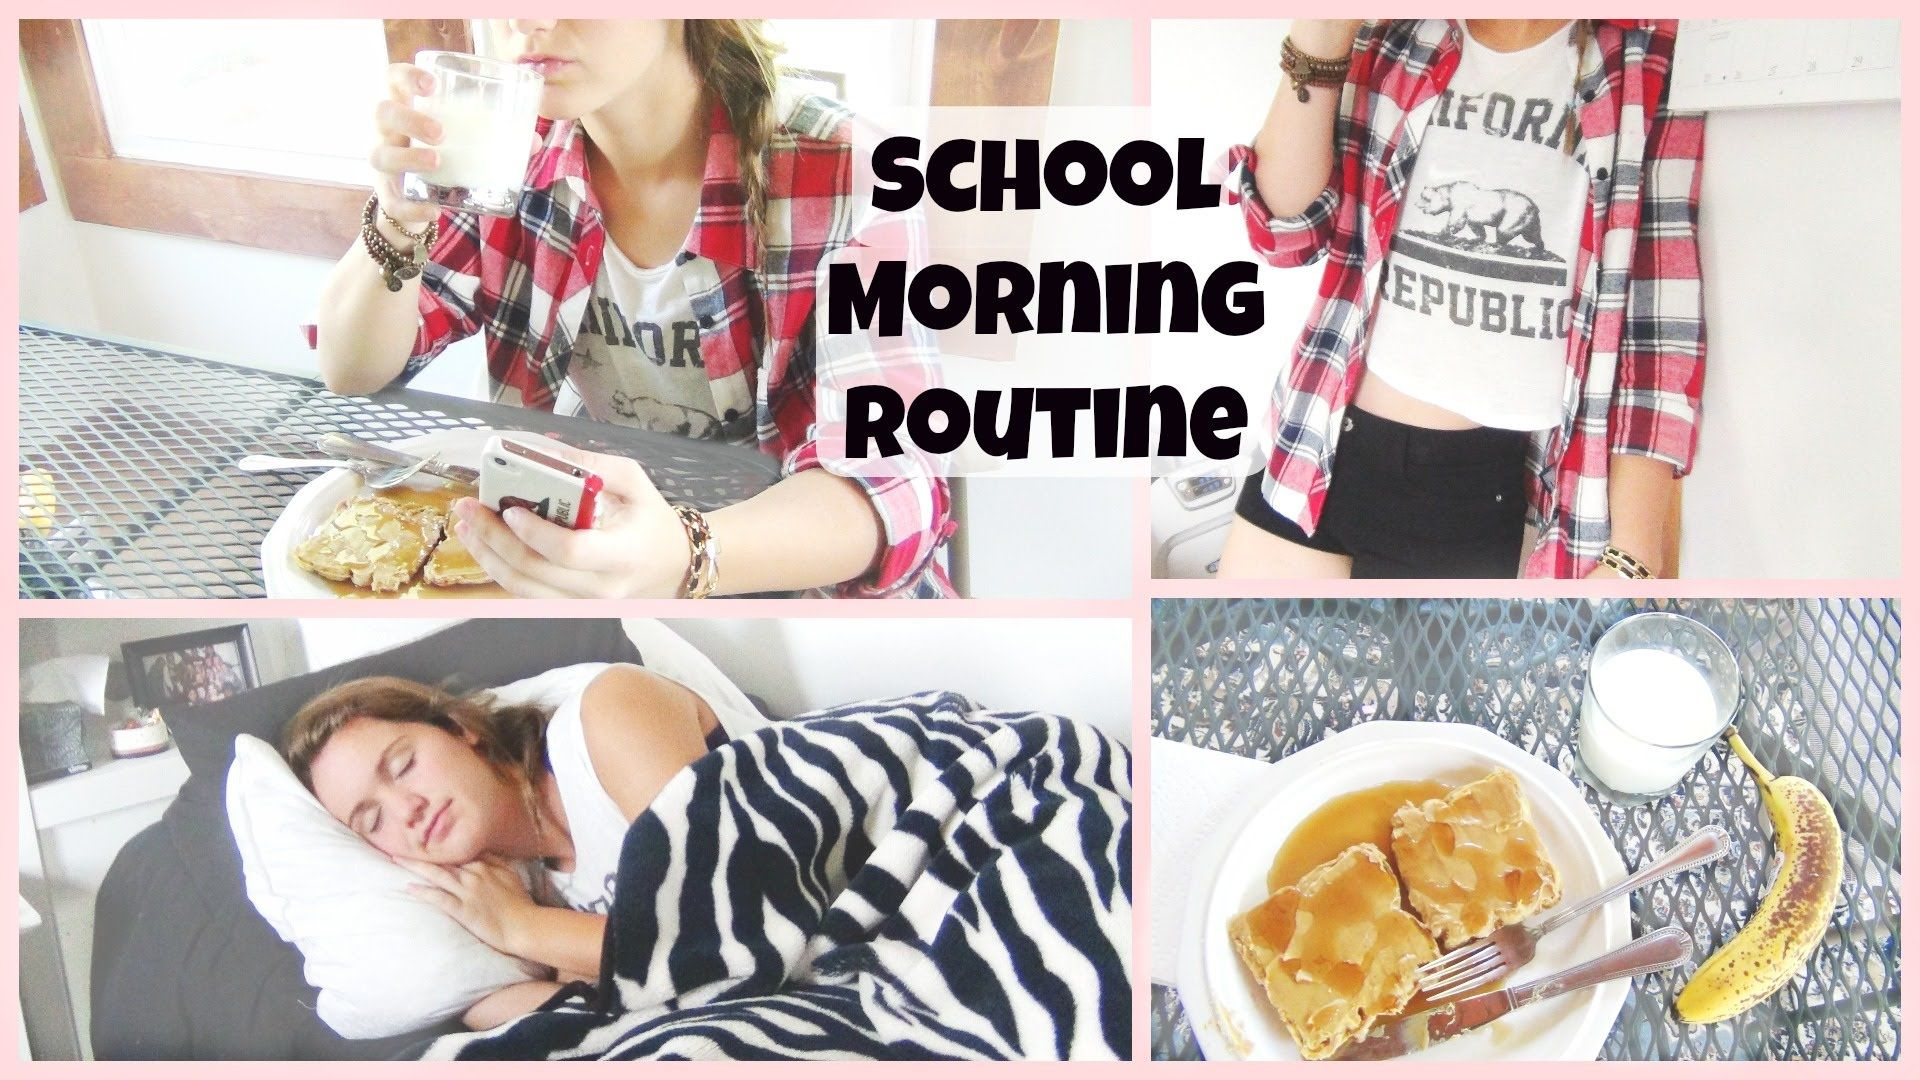 Morning Routine for School 2014 ♡